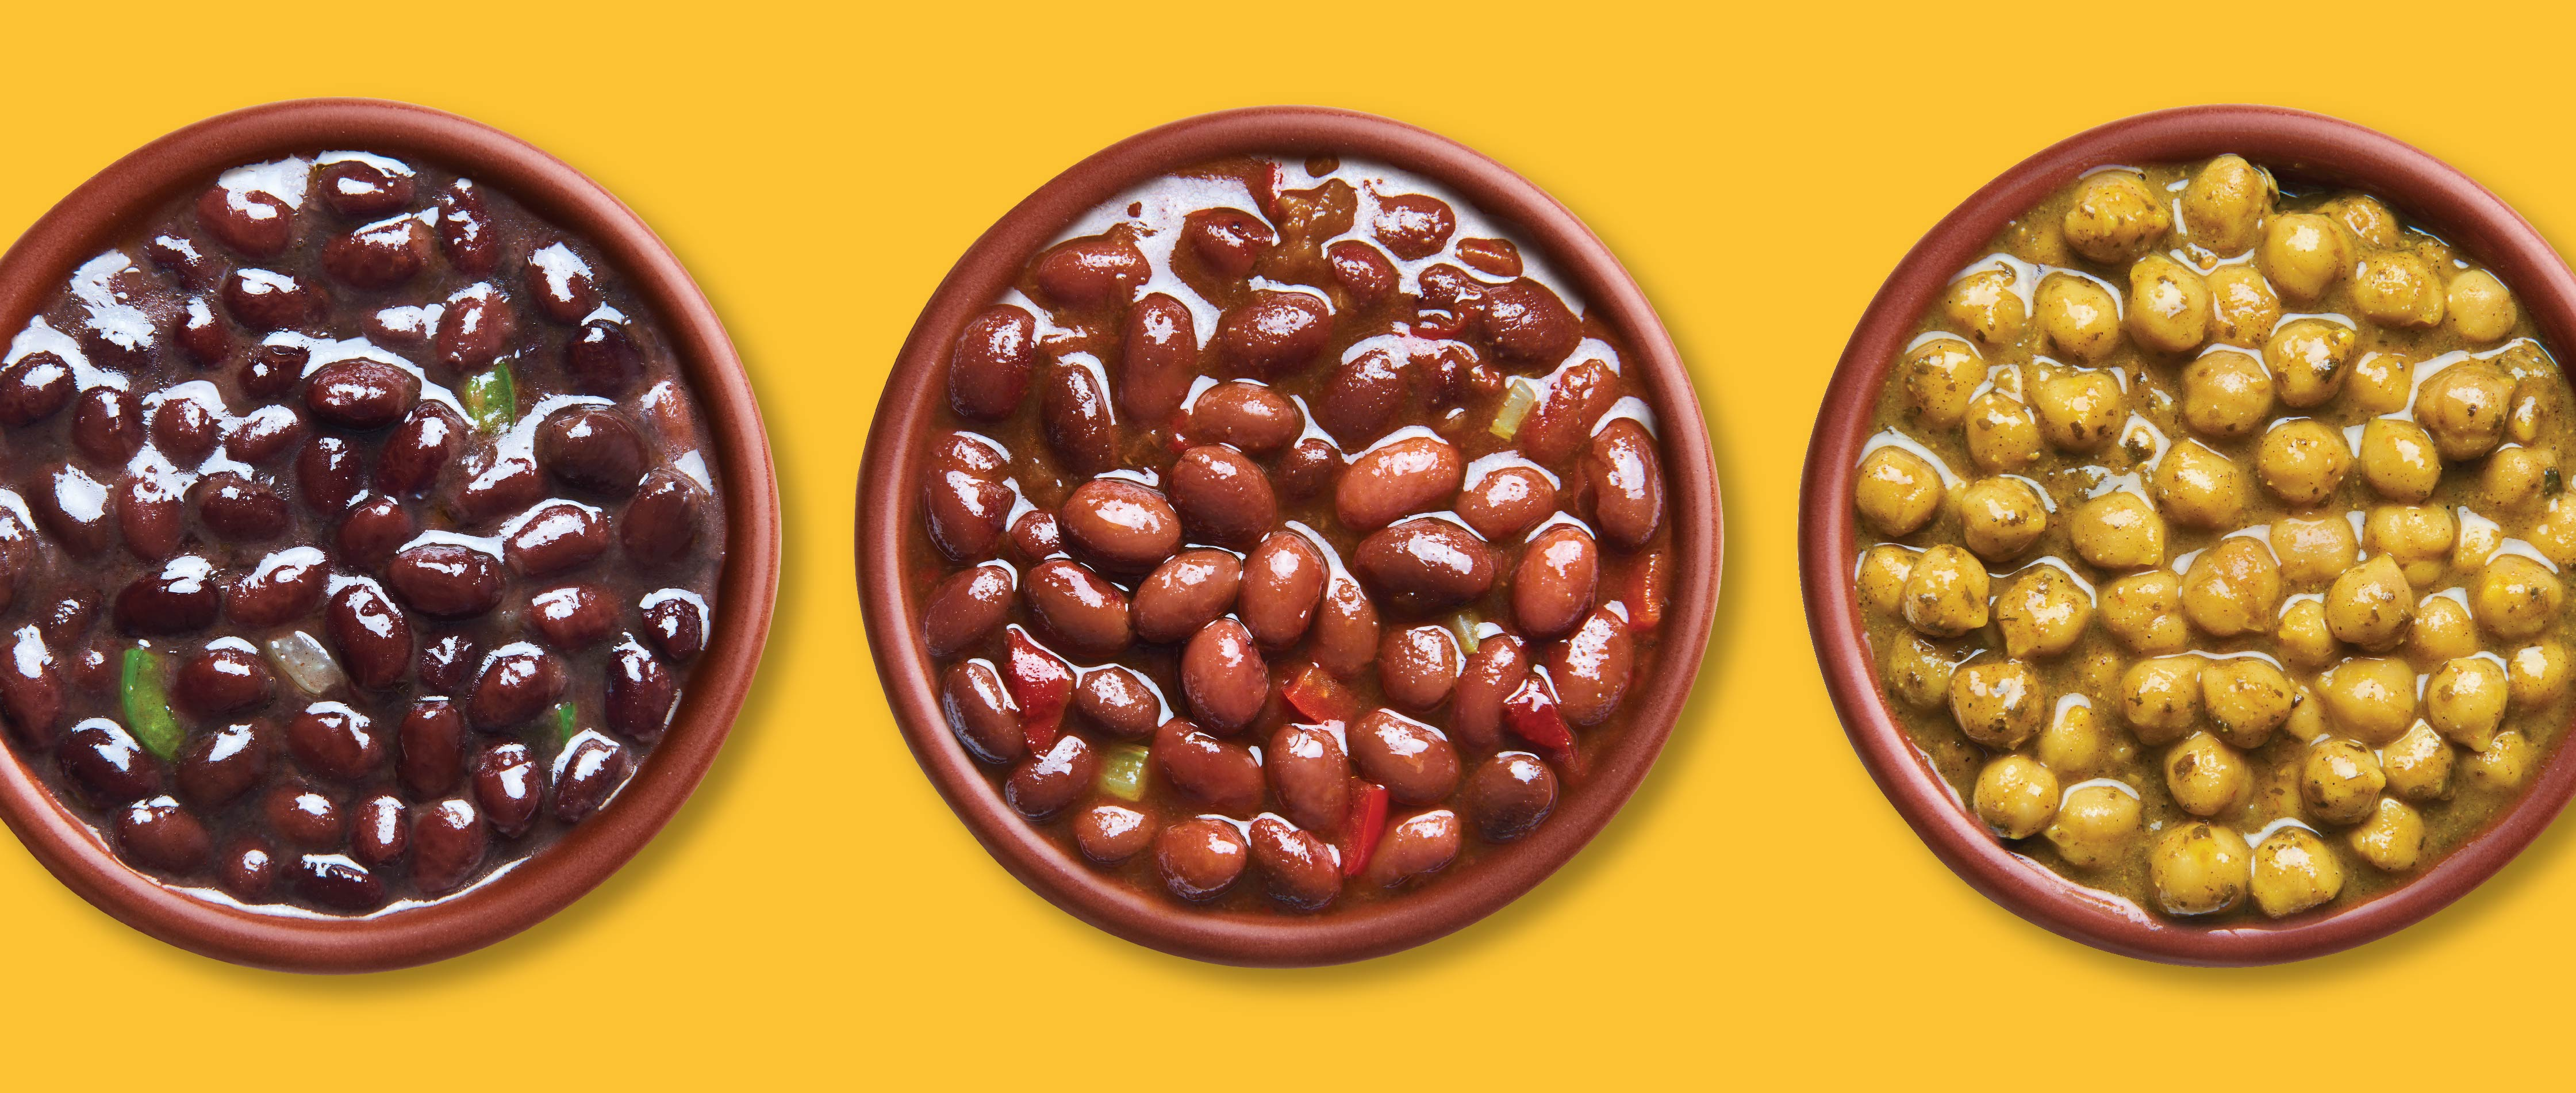 Food photography line up of Beans from a dozen cousins